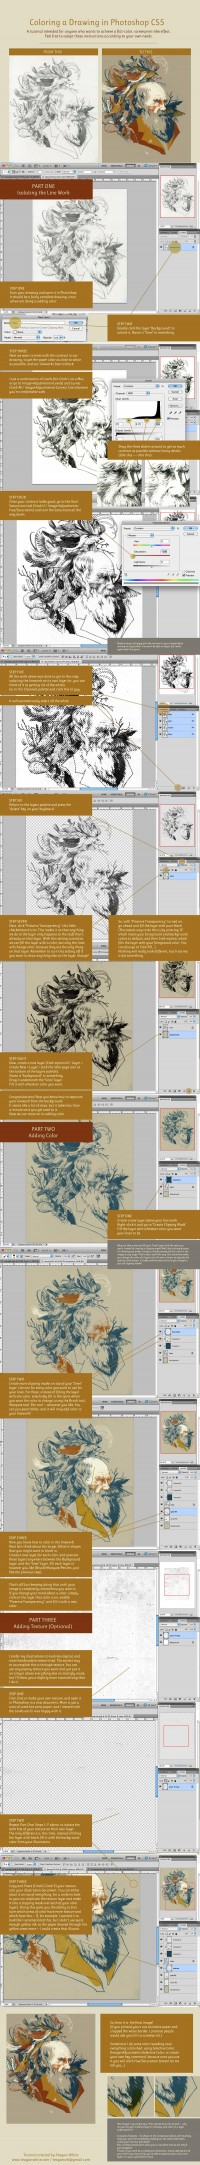 Coloring a Drawing in Photoshop CS5 by *teaganwhite